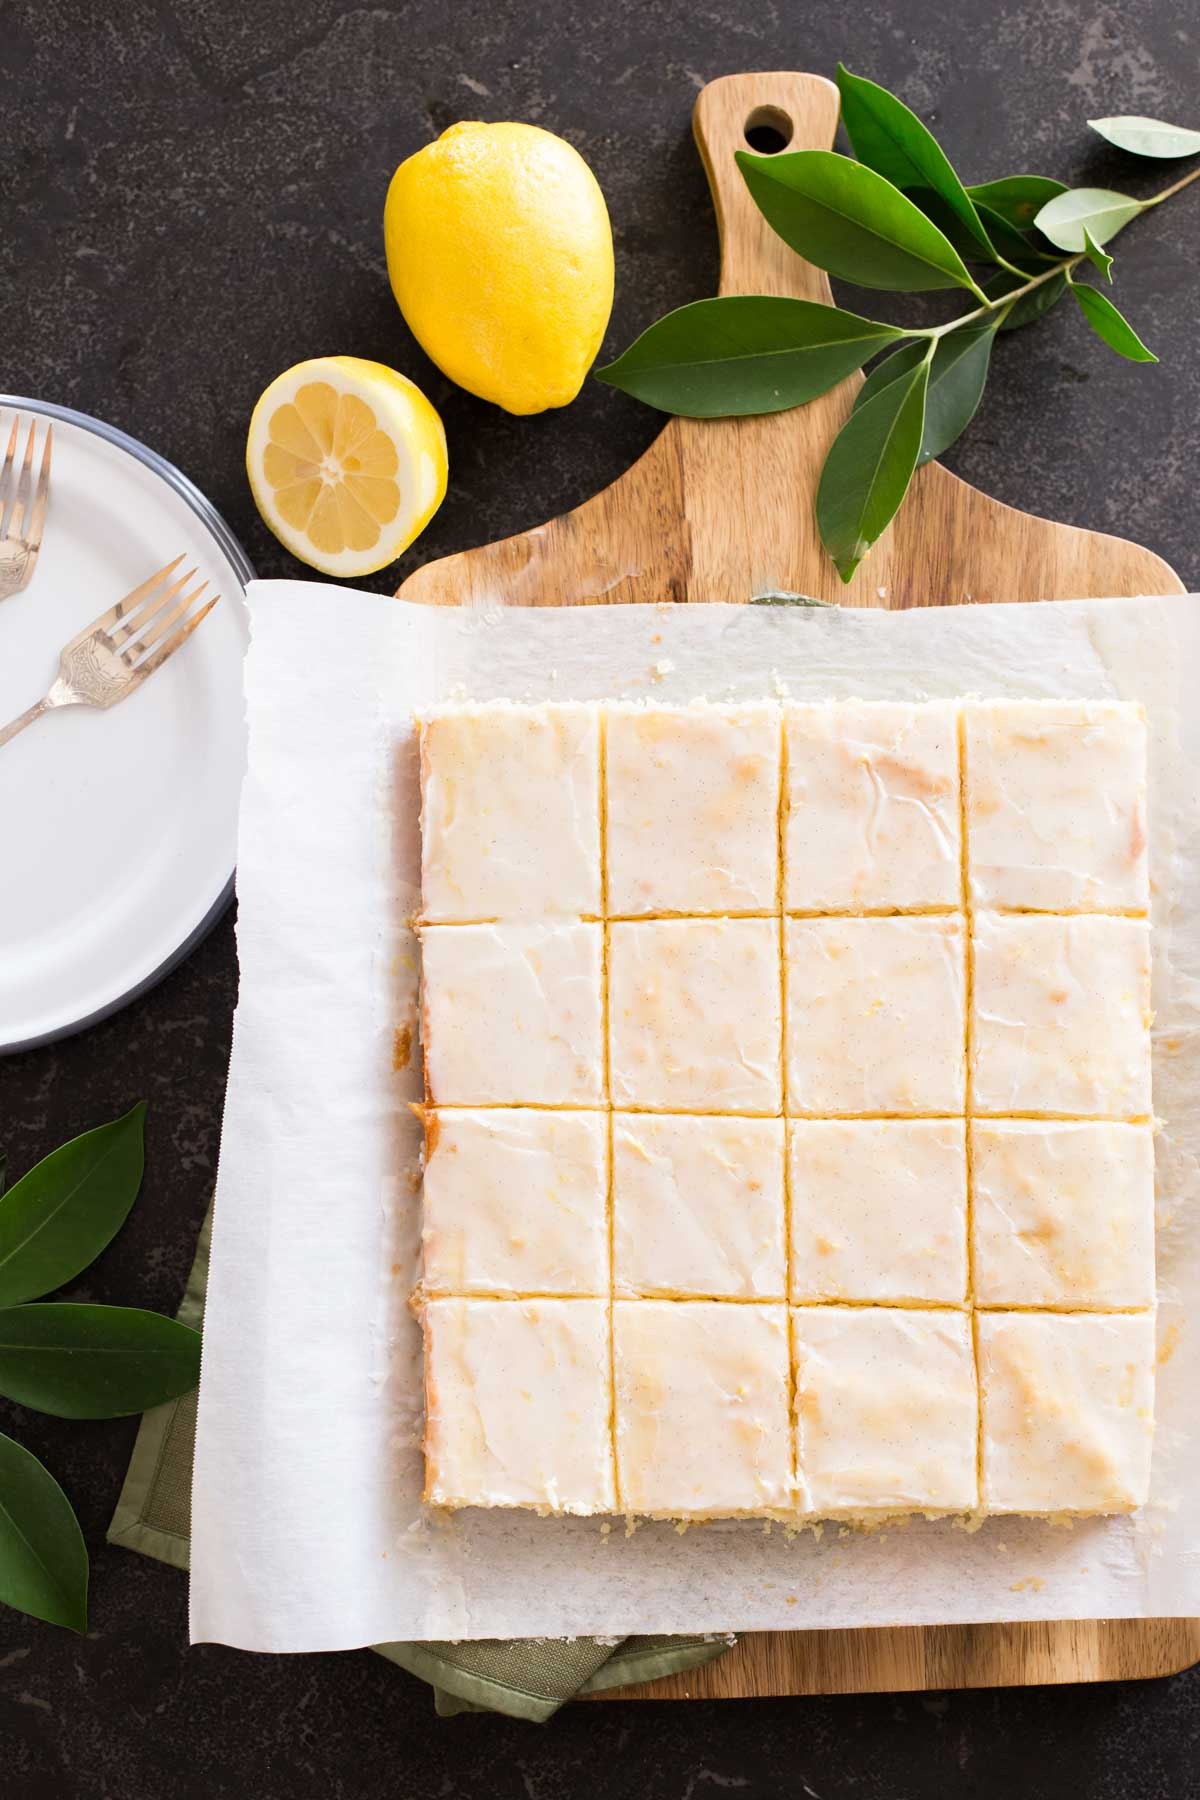 Vanilla Bean Lemon Bars cut into squares on parchment paper on top of a cutting board, with lemons and tree leaves next to the board, along with some plates and forks.